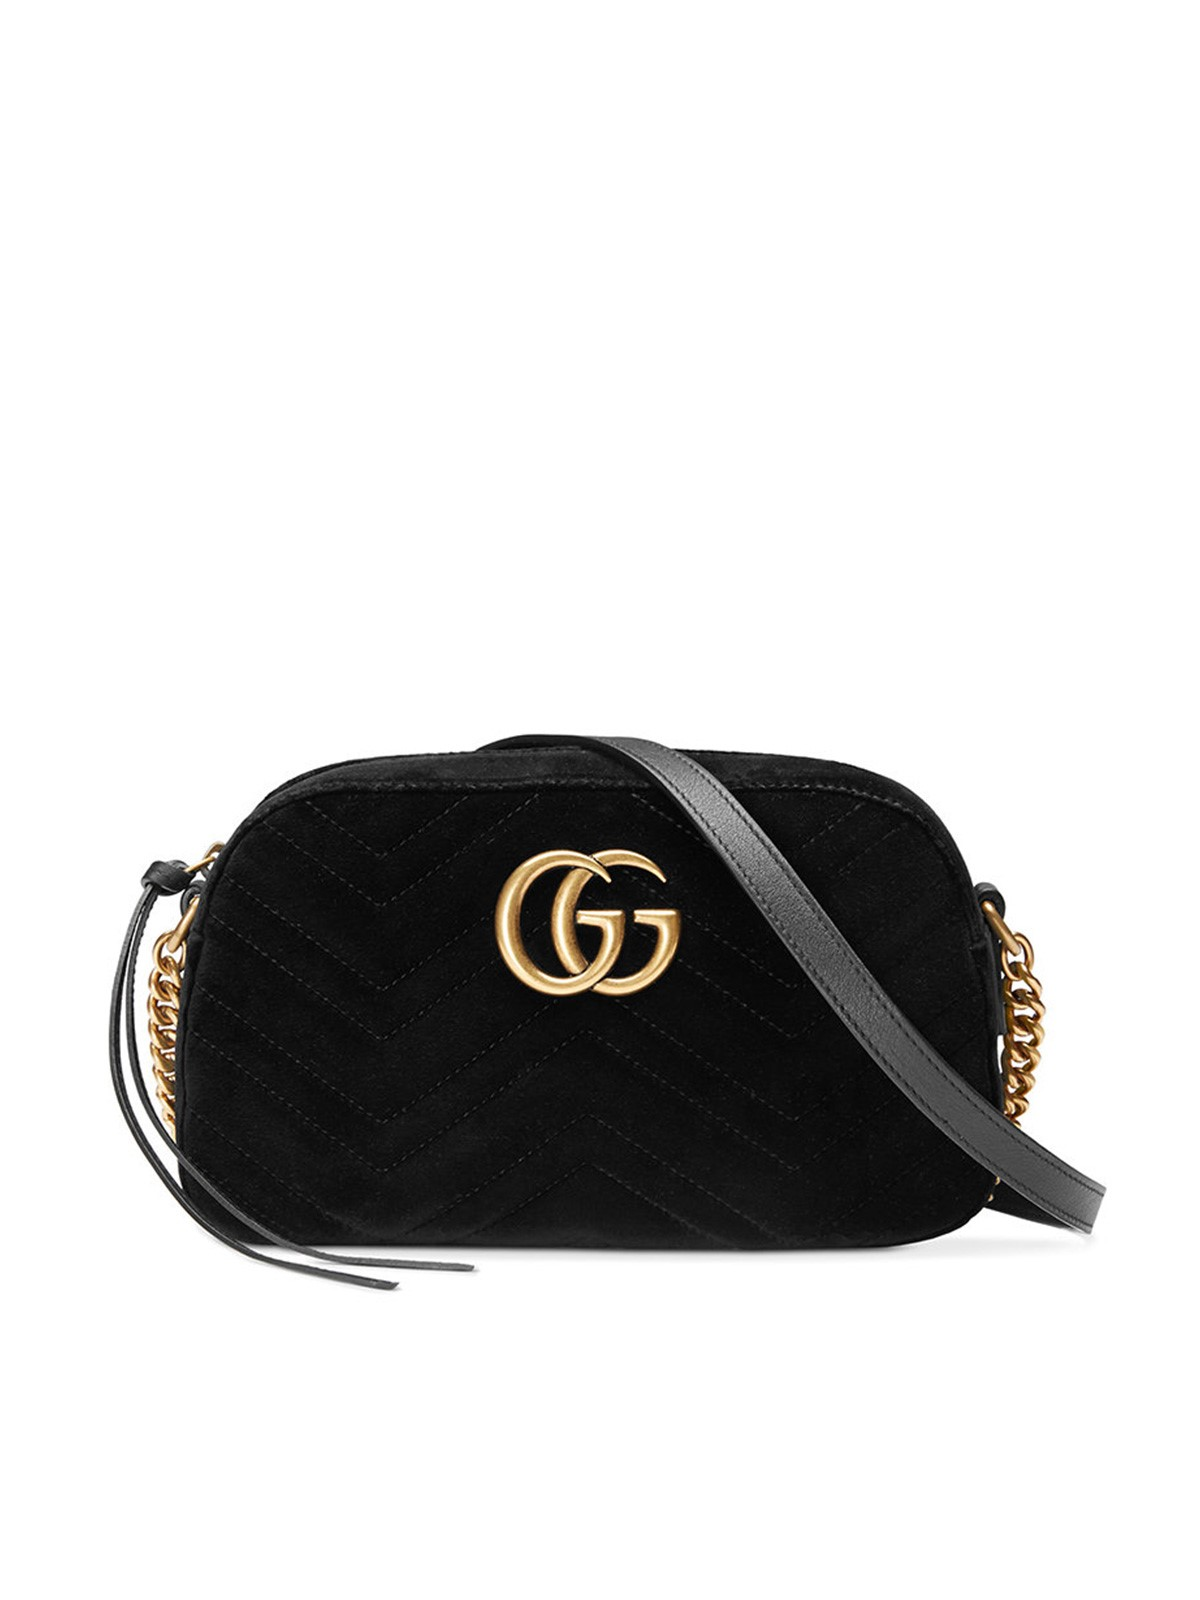 28954db14497 gucci GG MARMONT SMALL SHOULDER BAG available on montiboutique.com ...